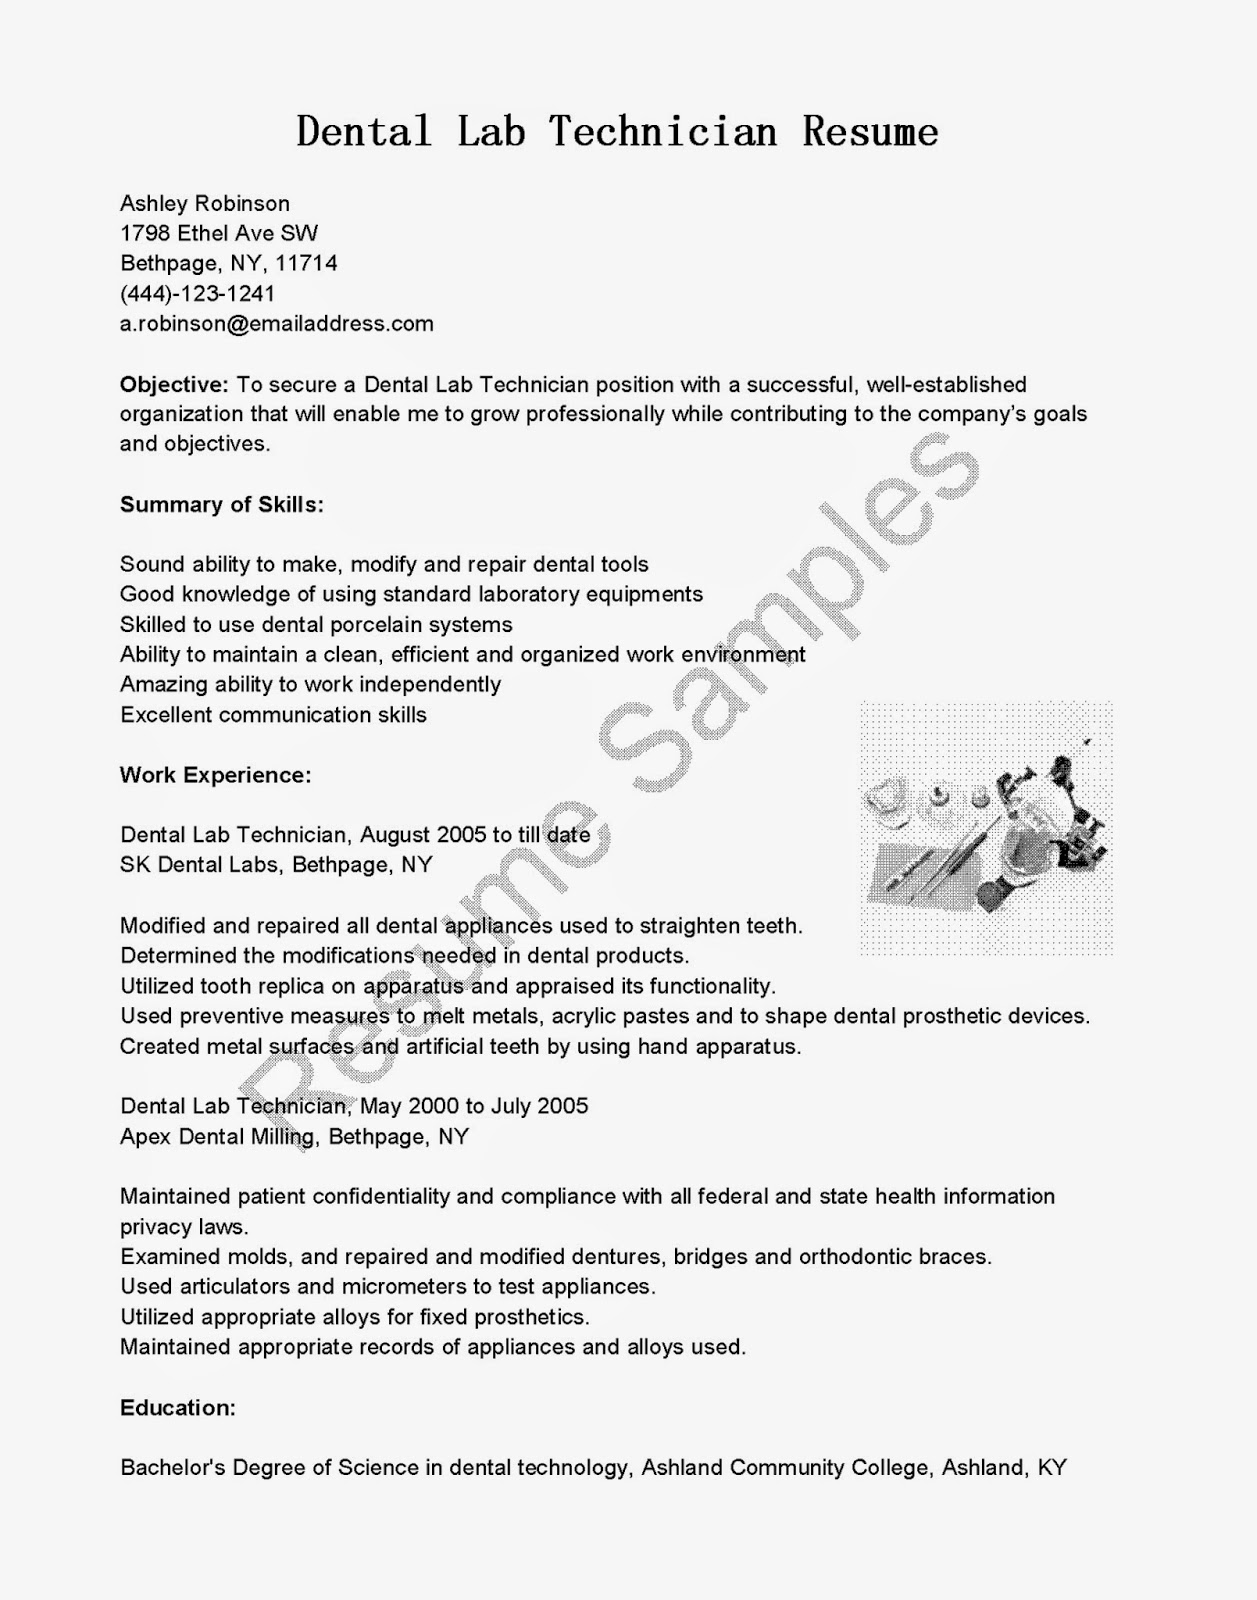 sample resume for ultrasound technologist resumer example service technician resume samples visualcv resume samples database